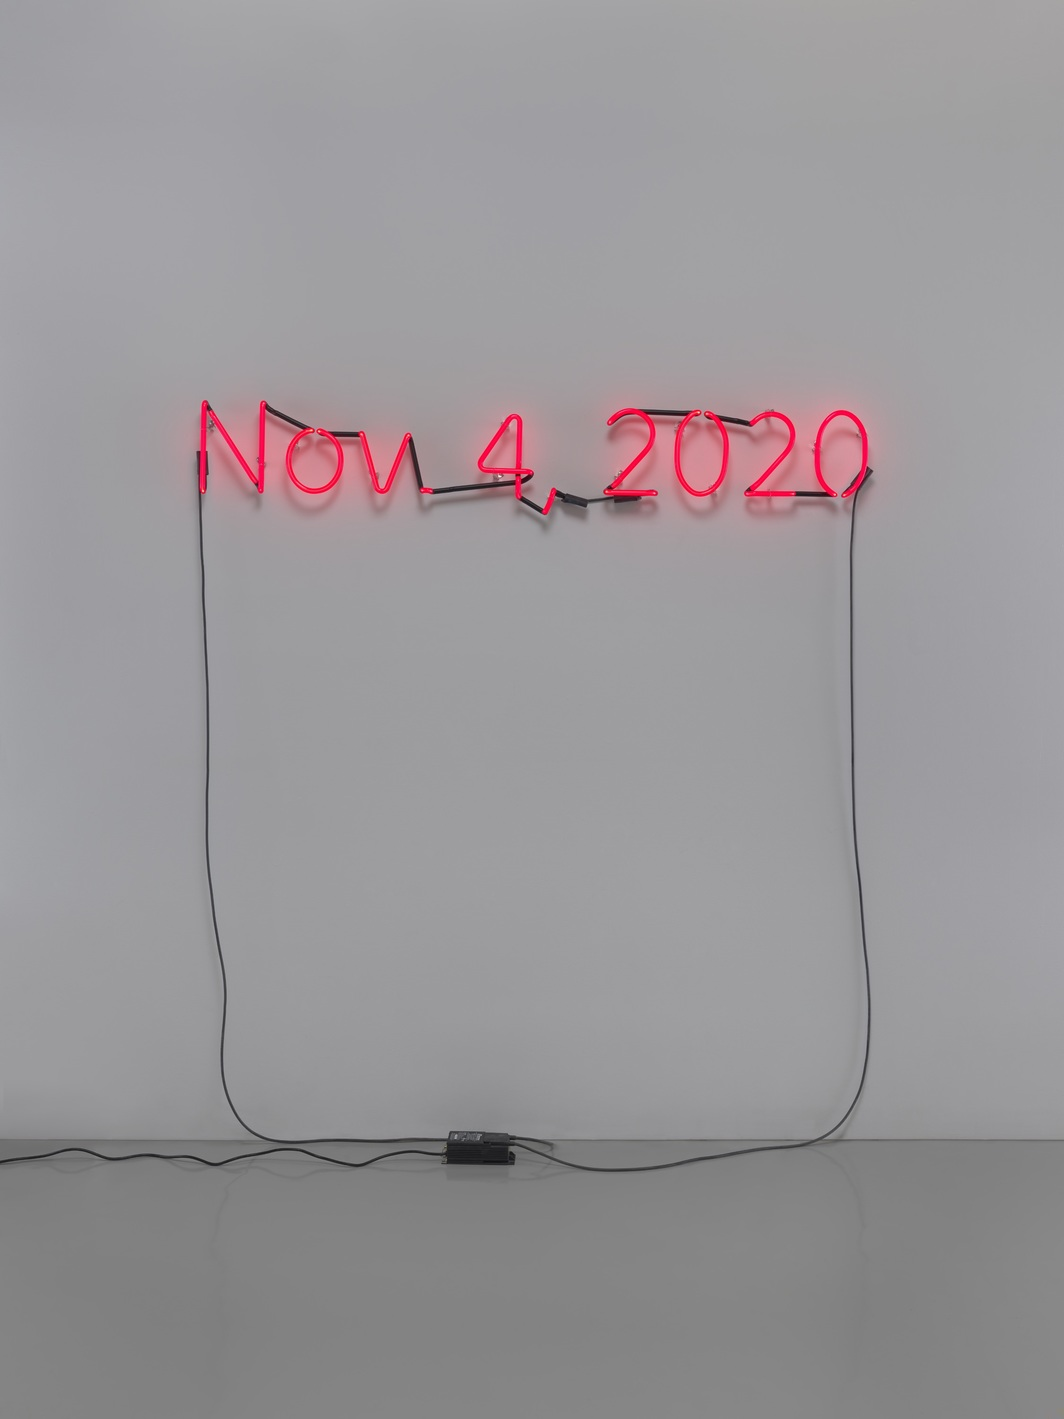 Artist Glenn Ligon Reveals His Latest Work, About a Never-Ending Election Day + Other Stories